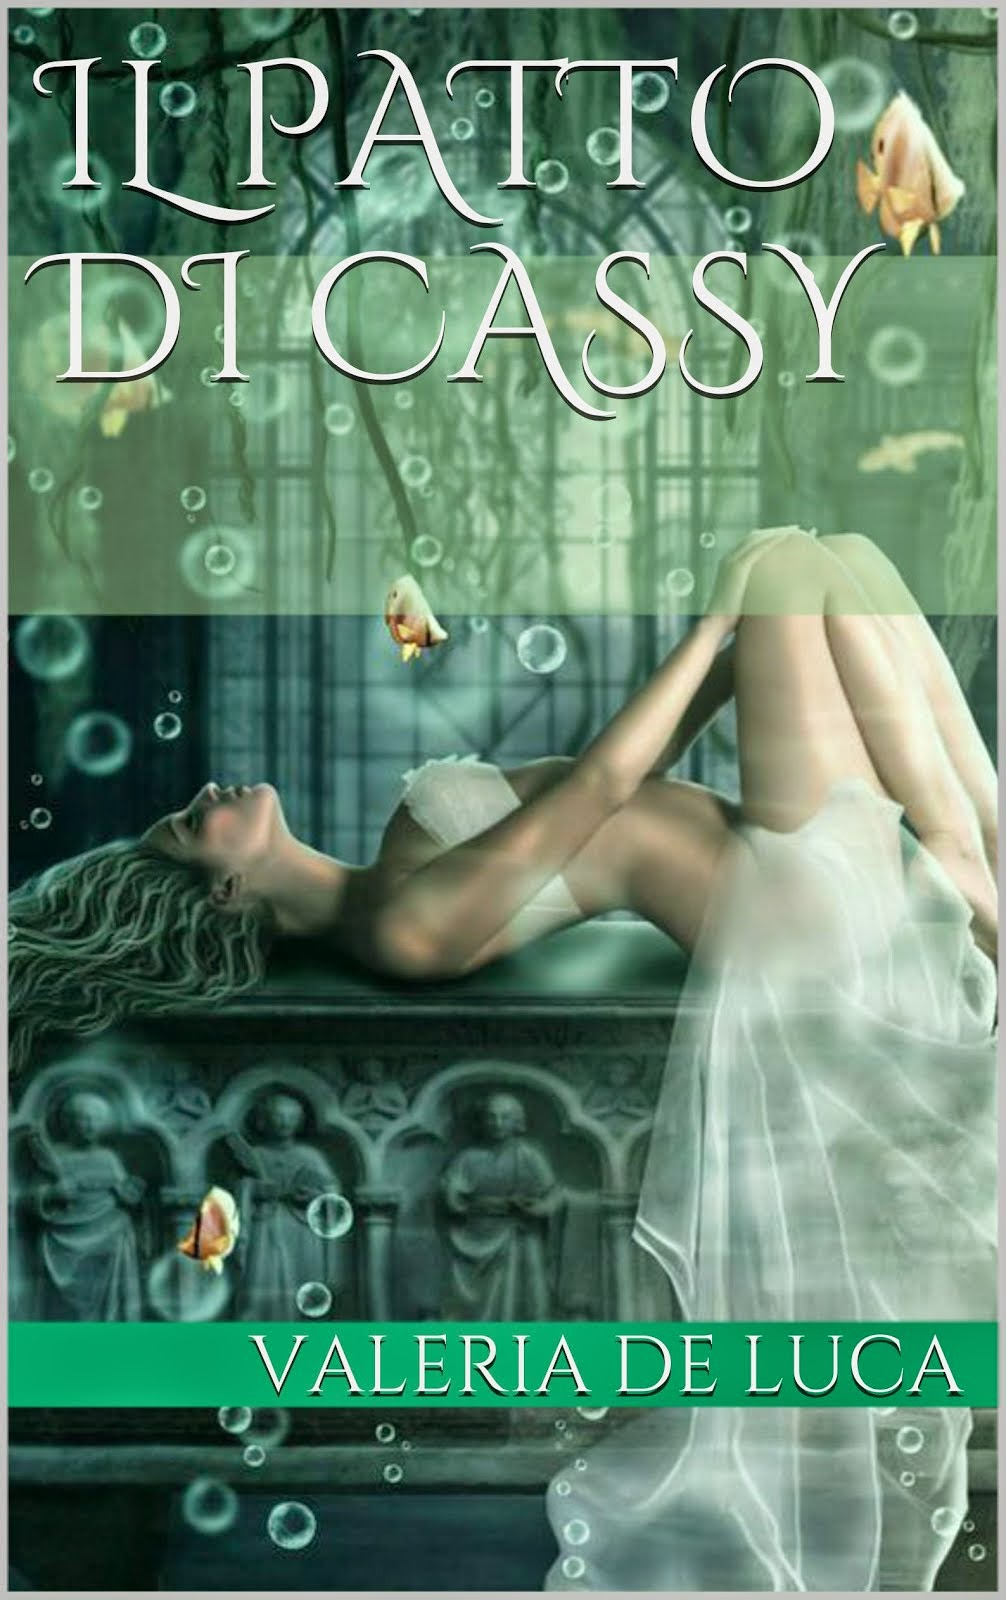 Il Patto di Cassy (Ebook su Amazon)